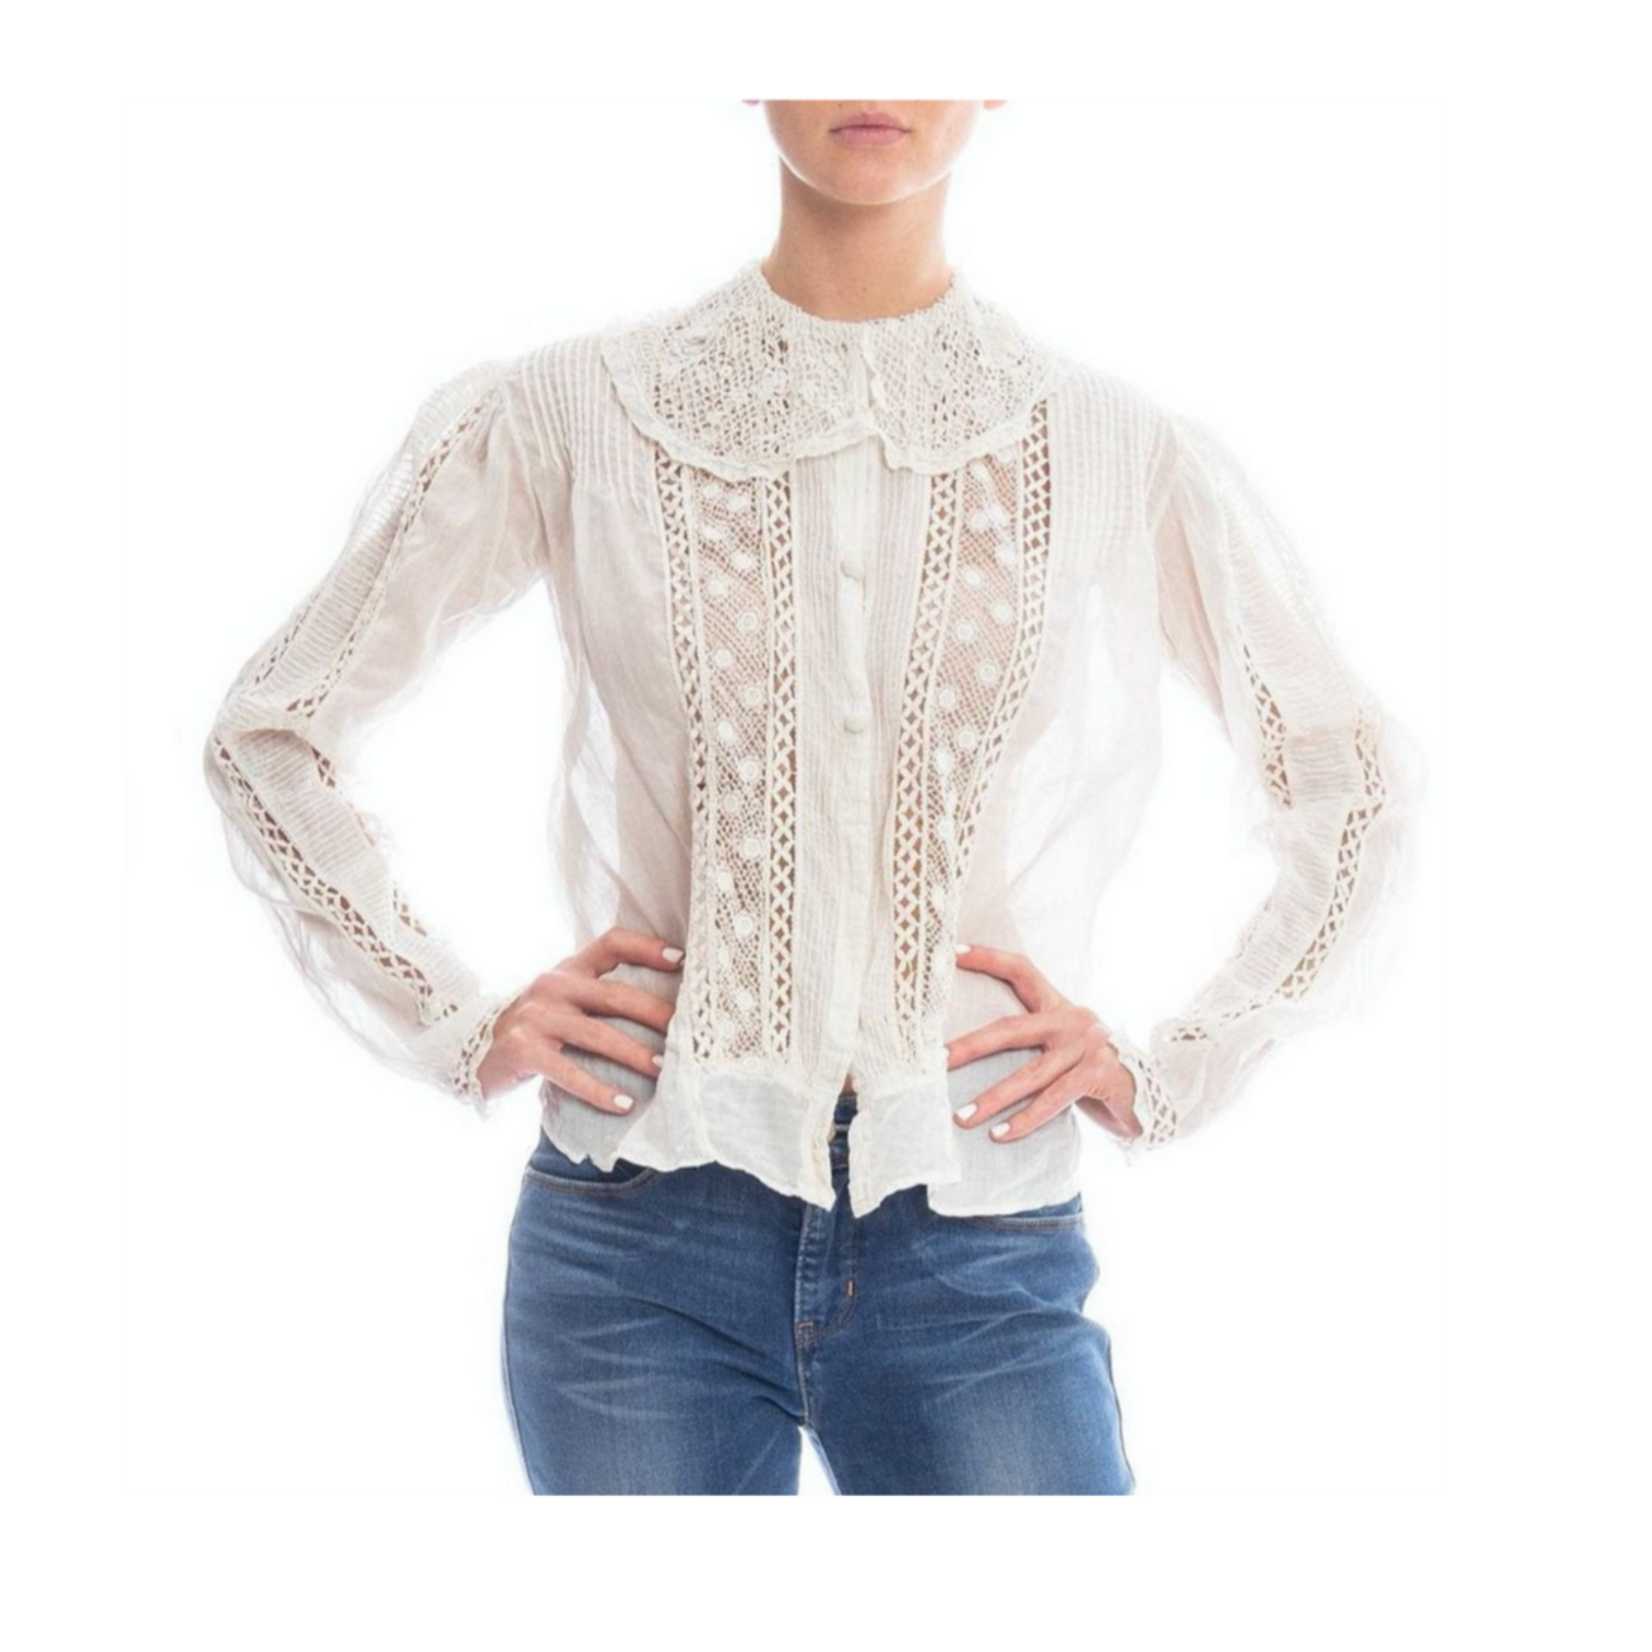 Wyld Blue Vintage Edwardian White Cotton Voile & Lace Button Front Blouse Made in New York Label  WLT3ON704